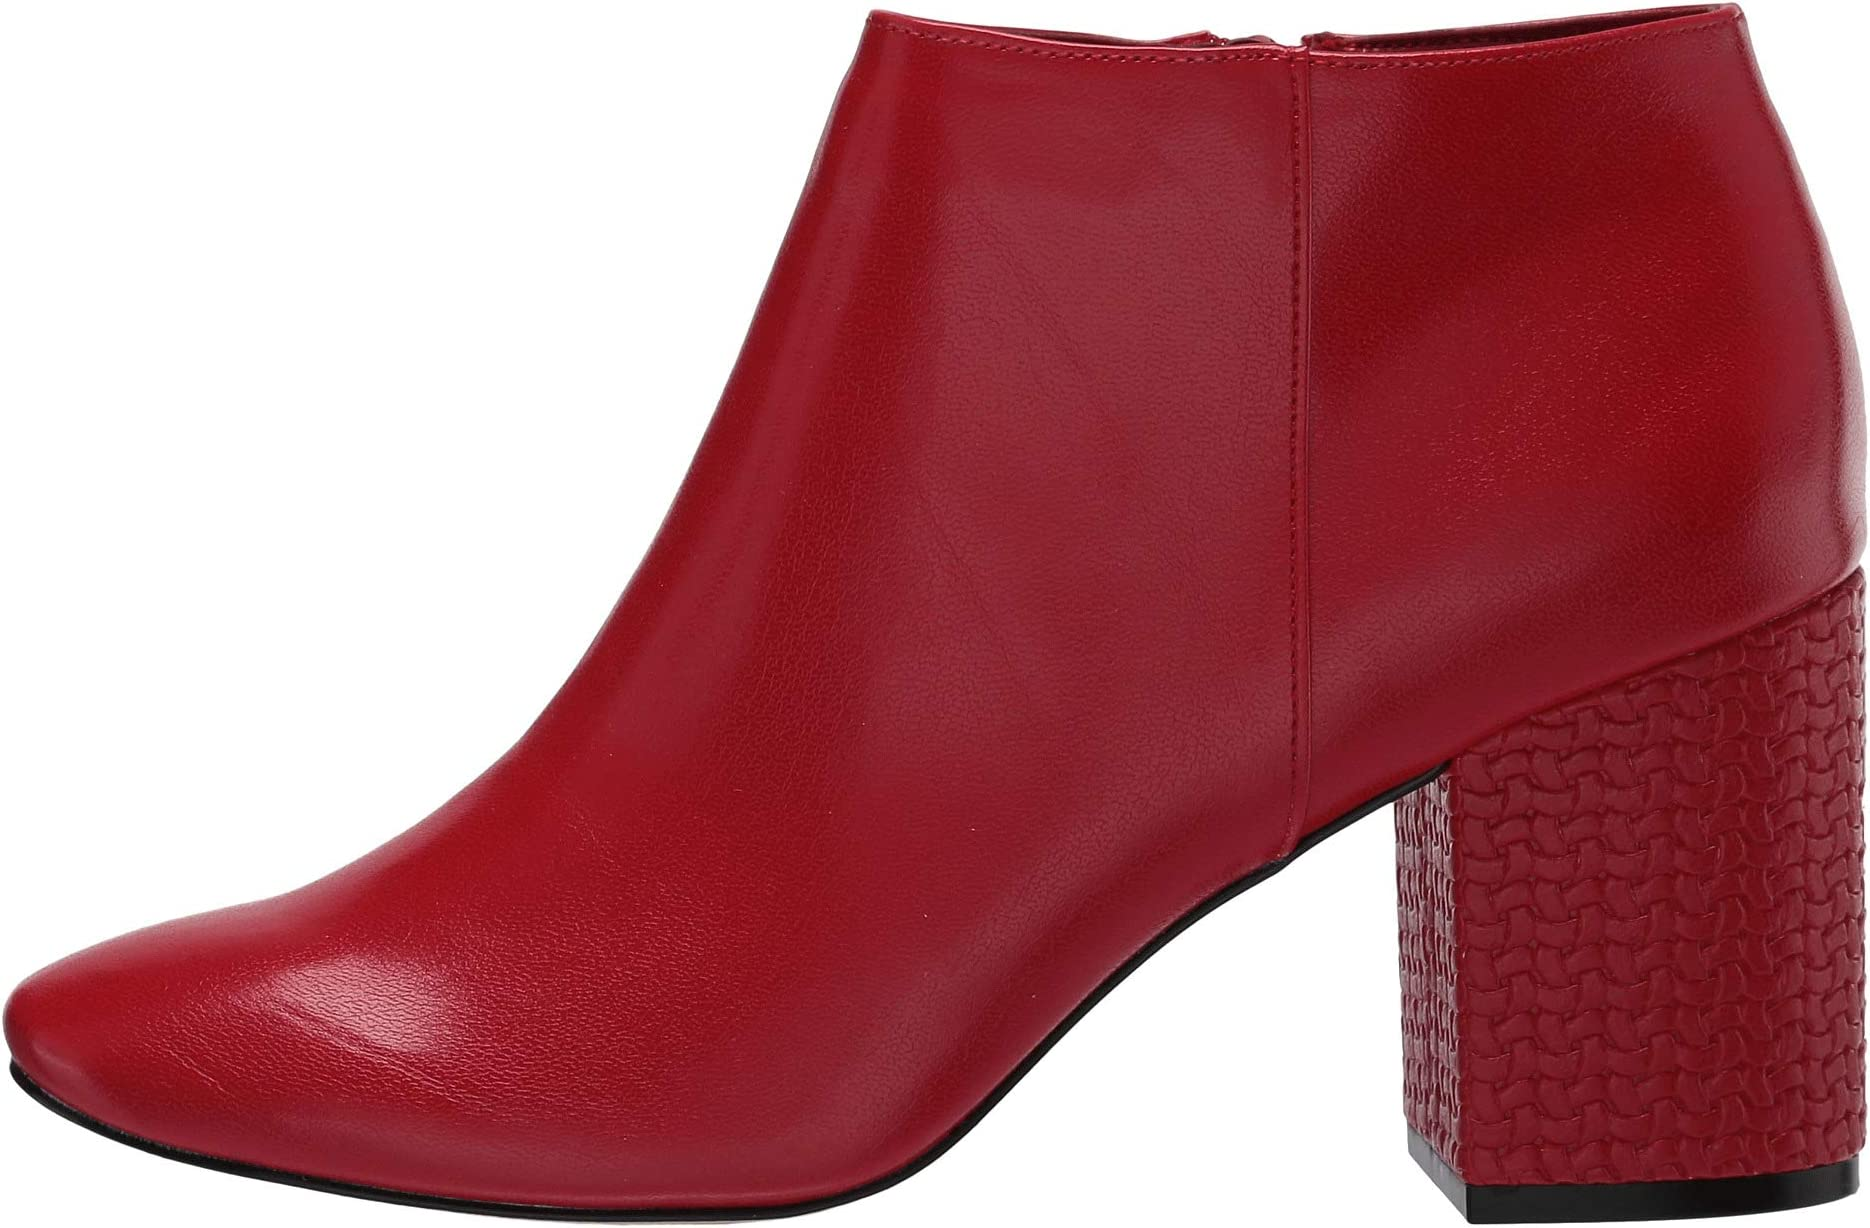 Katy Perry The Corra | Women's shoes | 2020 Newest